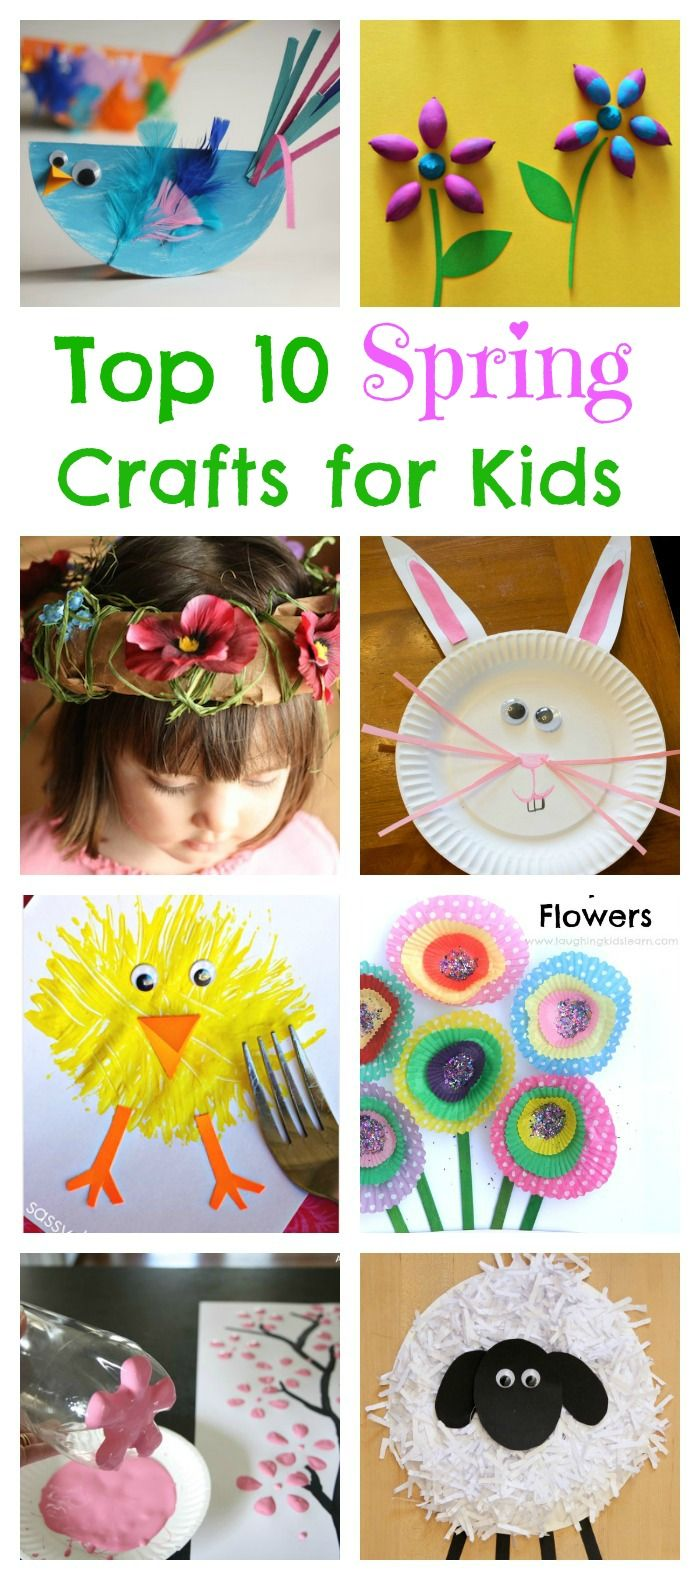 17 best images about kidz arts and crafts on pinterest kids